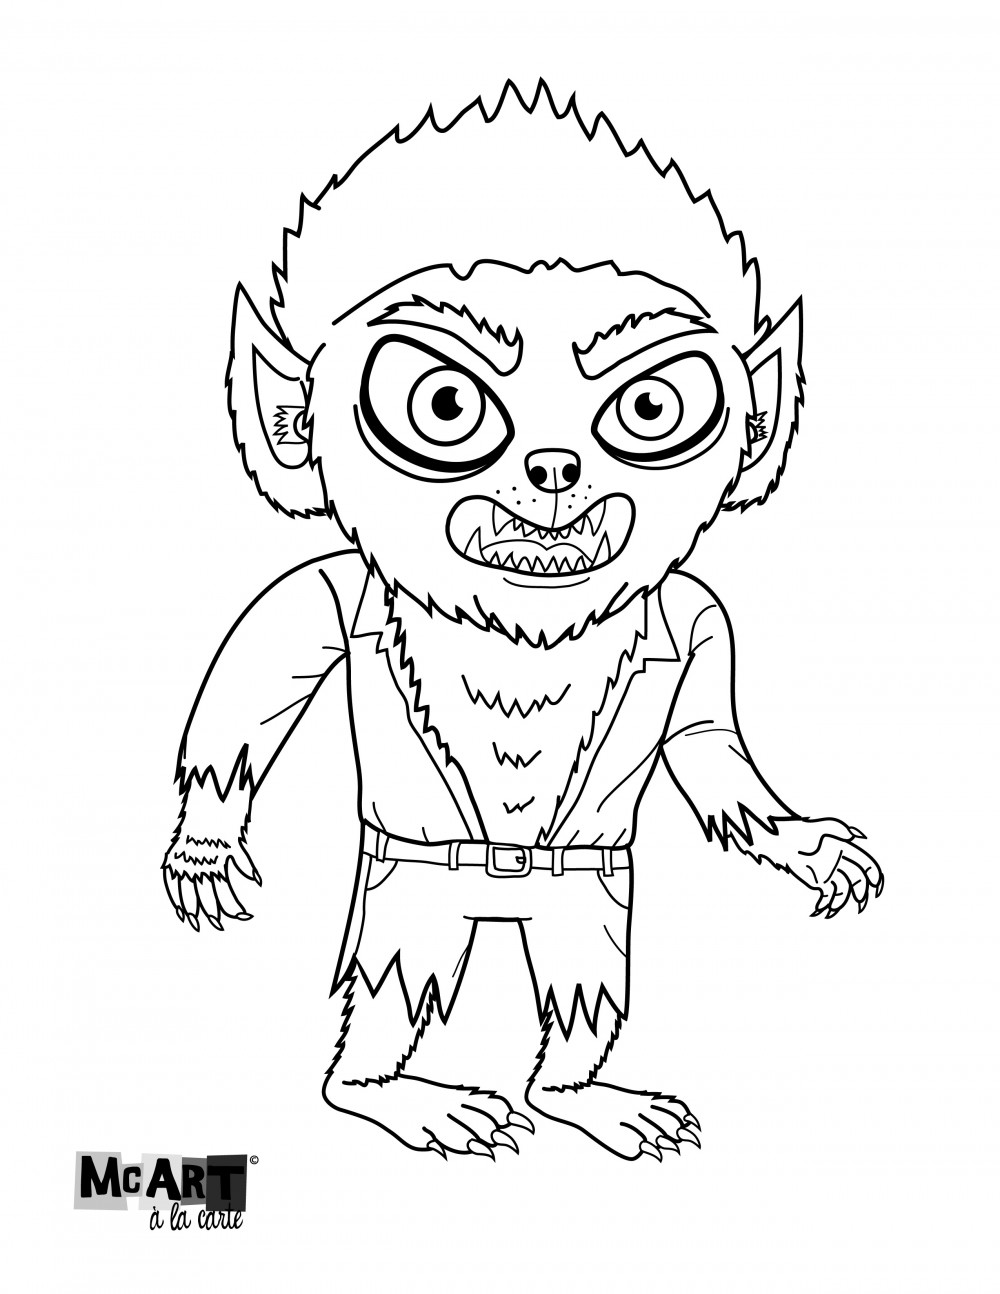 coloring pages | McIllustrator